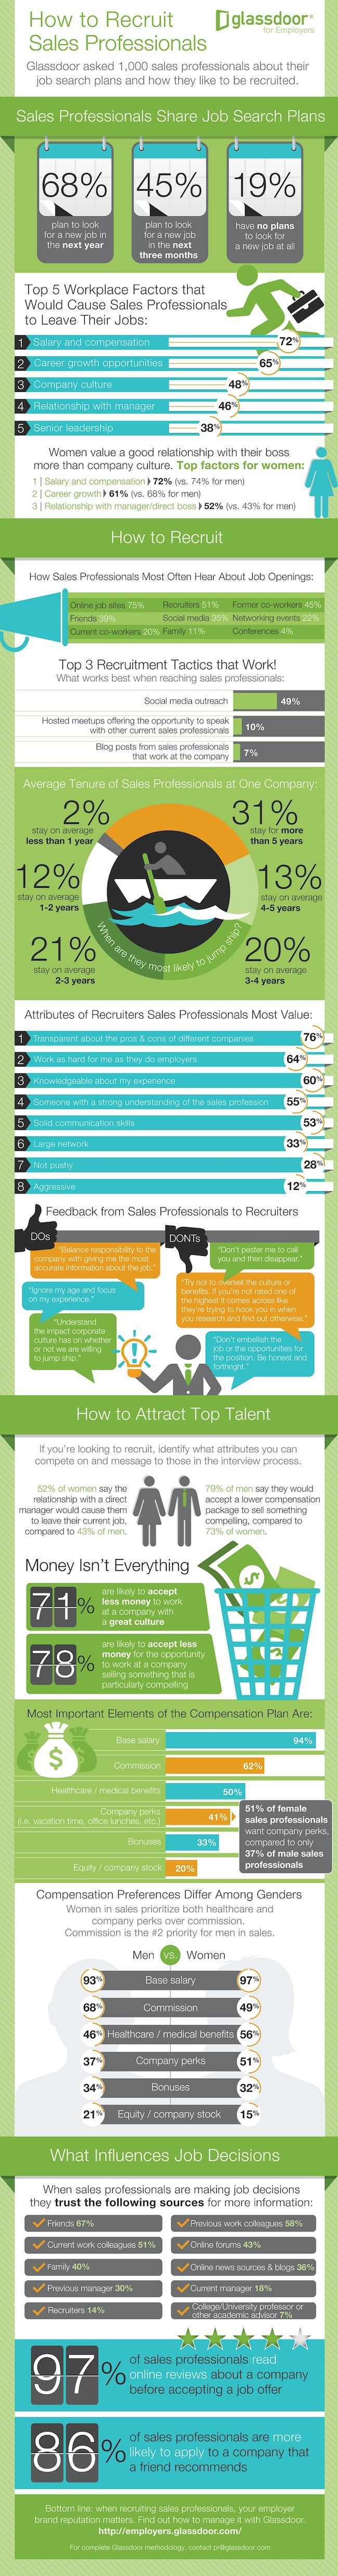 GD_SalesProfessional_Infographic_resize_(1)